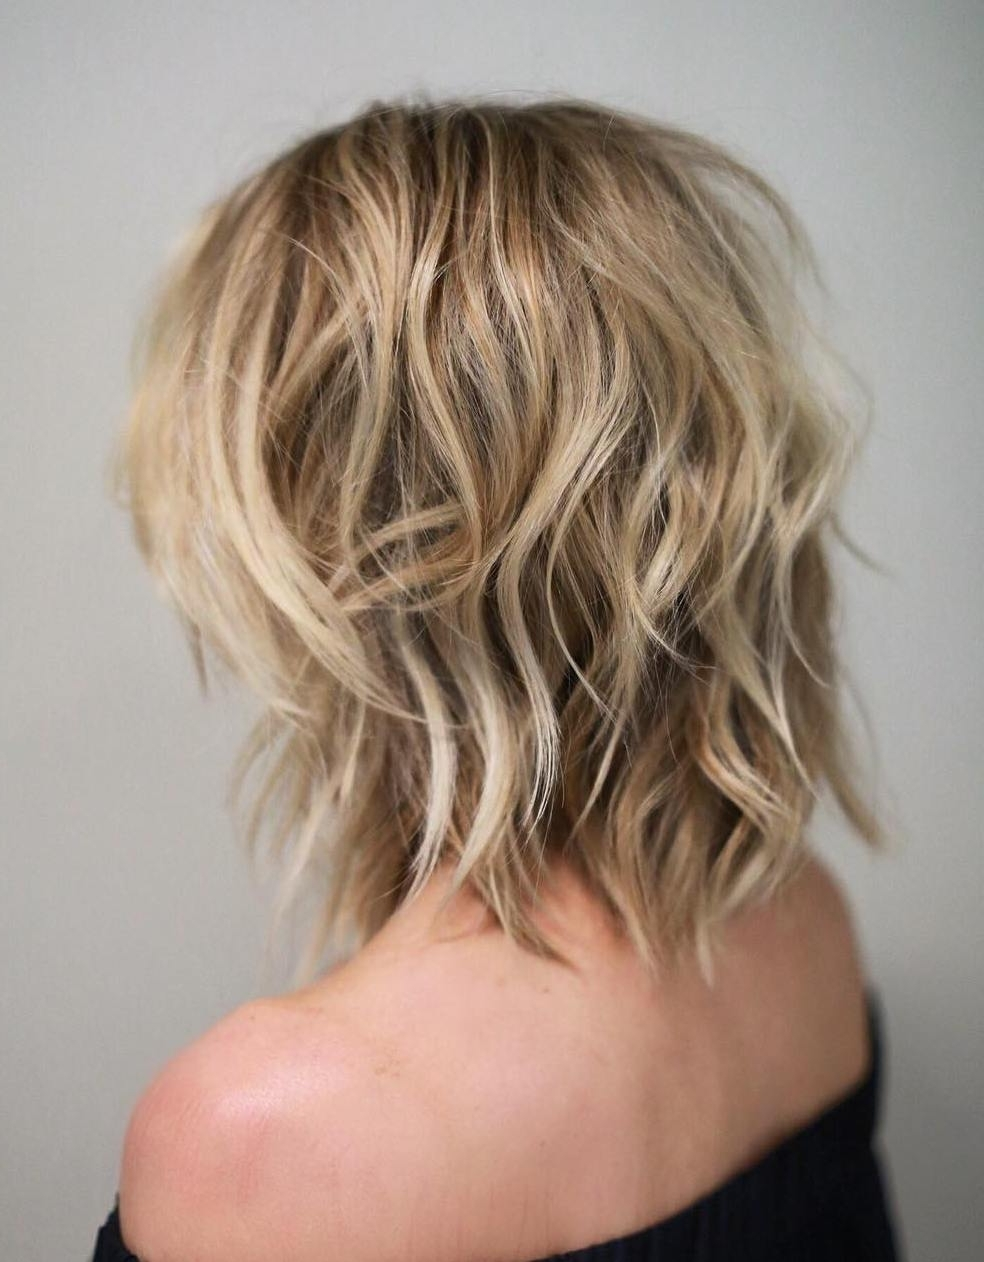 50 Best Variations Of A Medium Shag Haircut For Your Distinctive Style In Recent Shaggy Hairstyles For Wavy Hair (View 5 of 15)